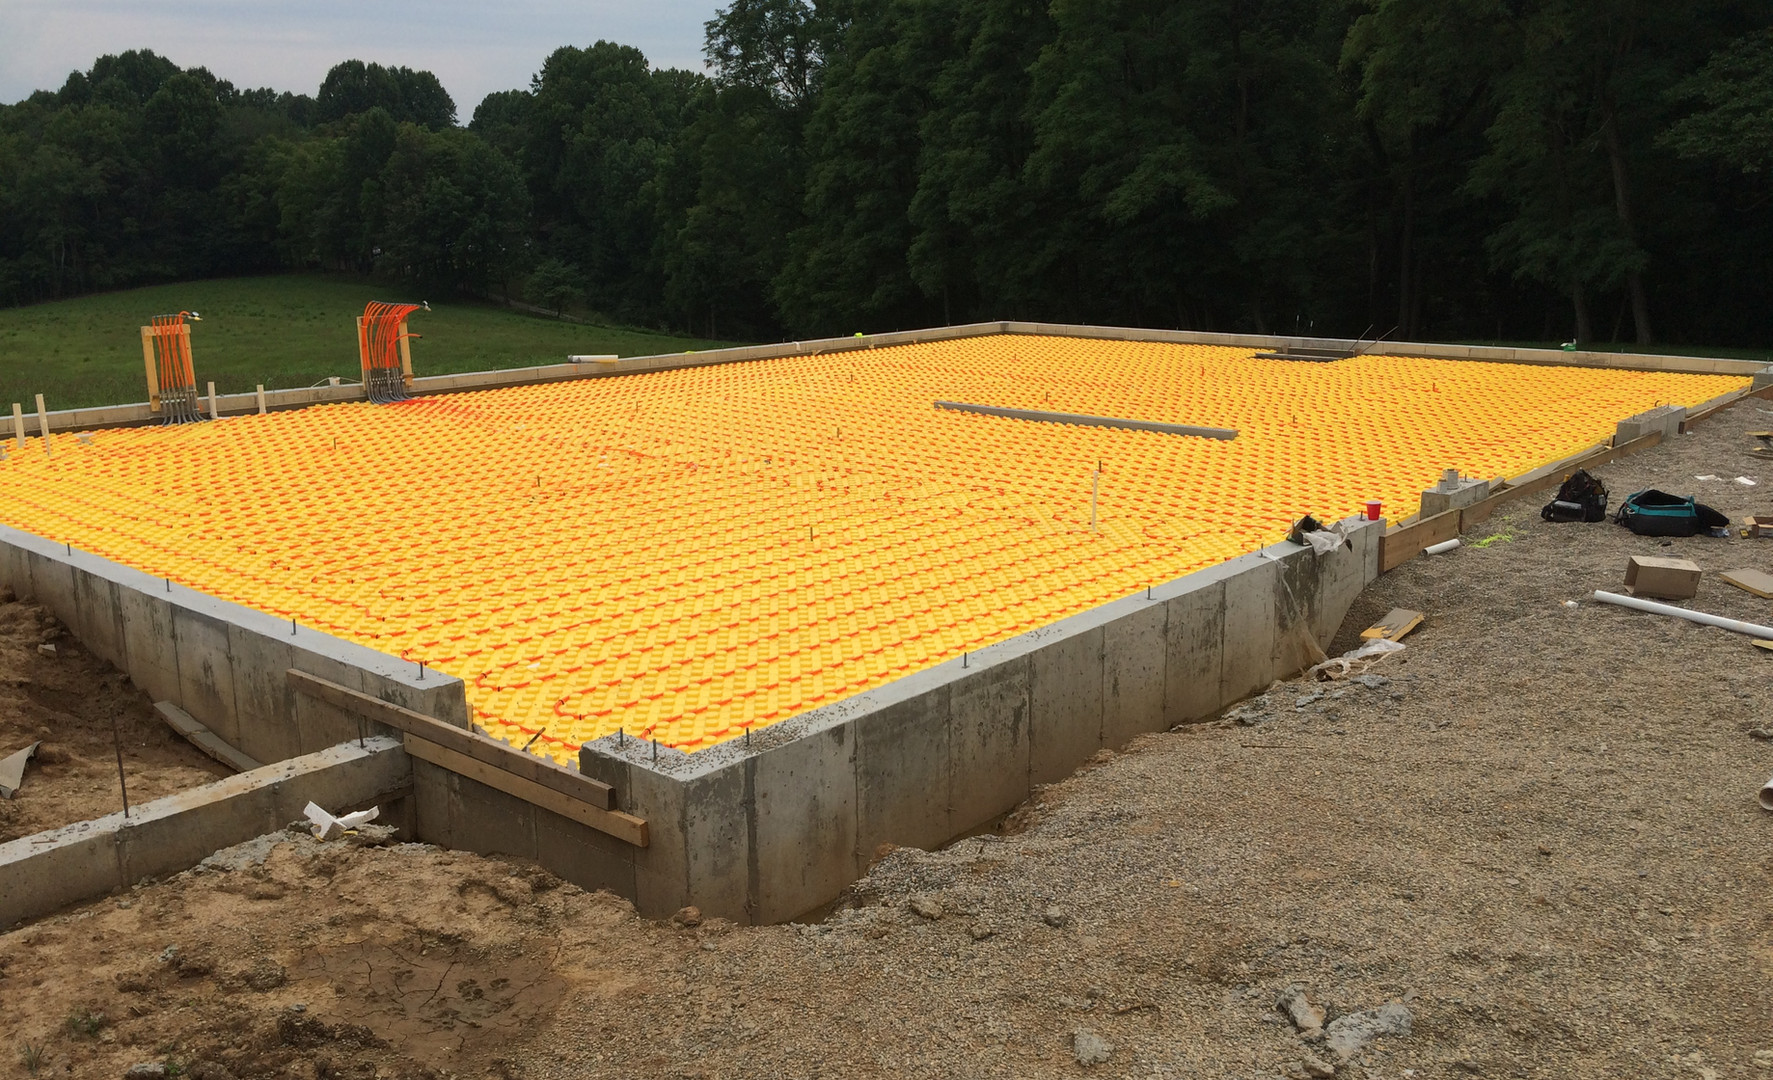 Radiant floor heating rough-in before concrete pour